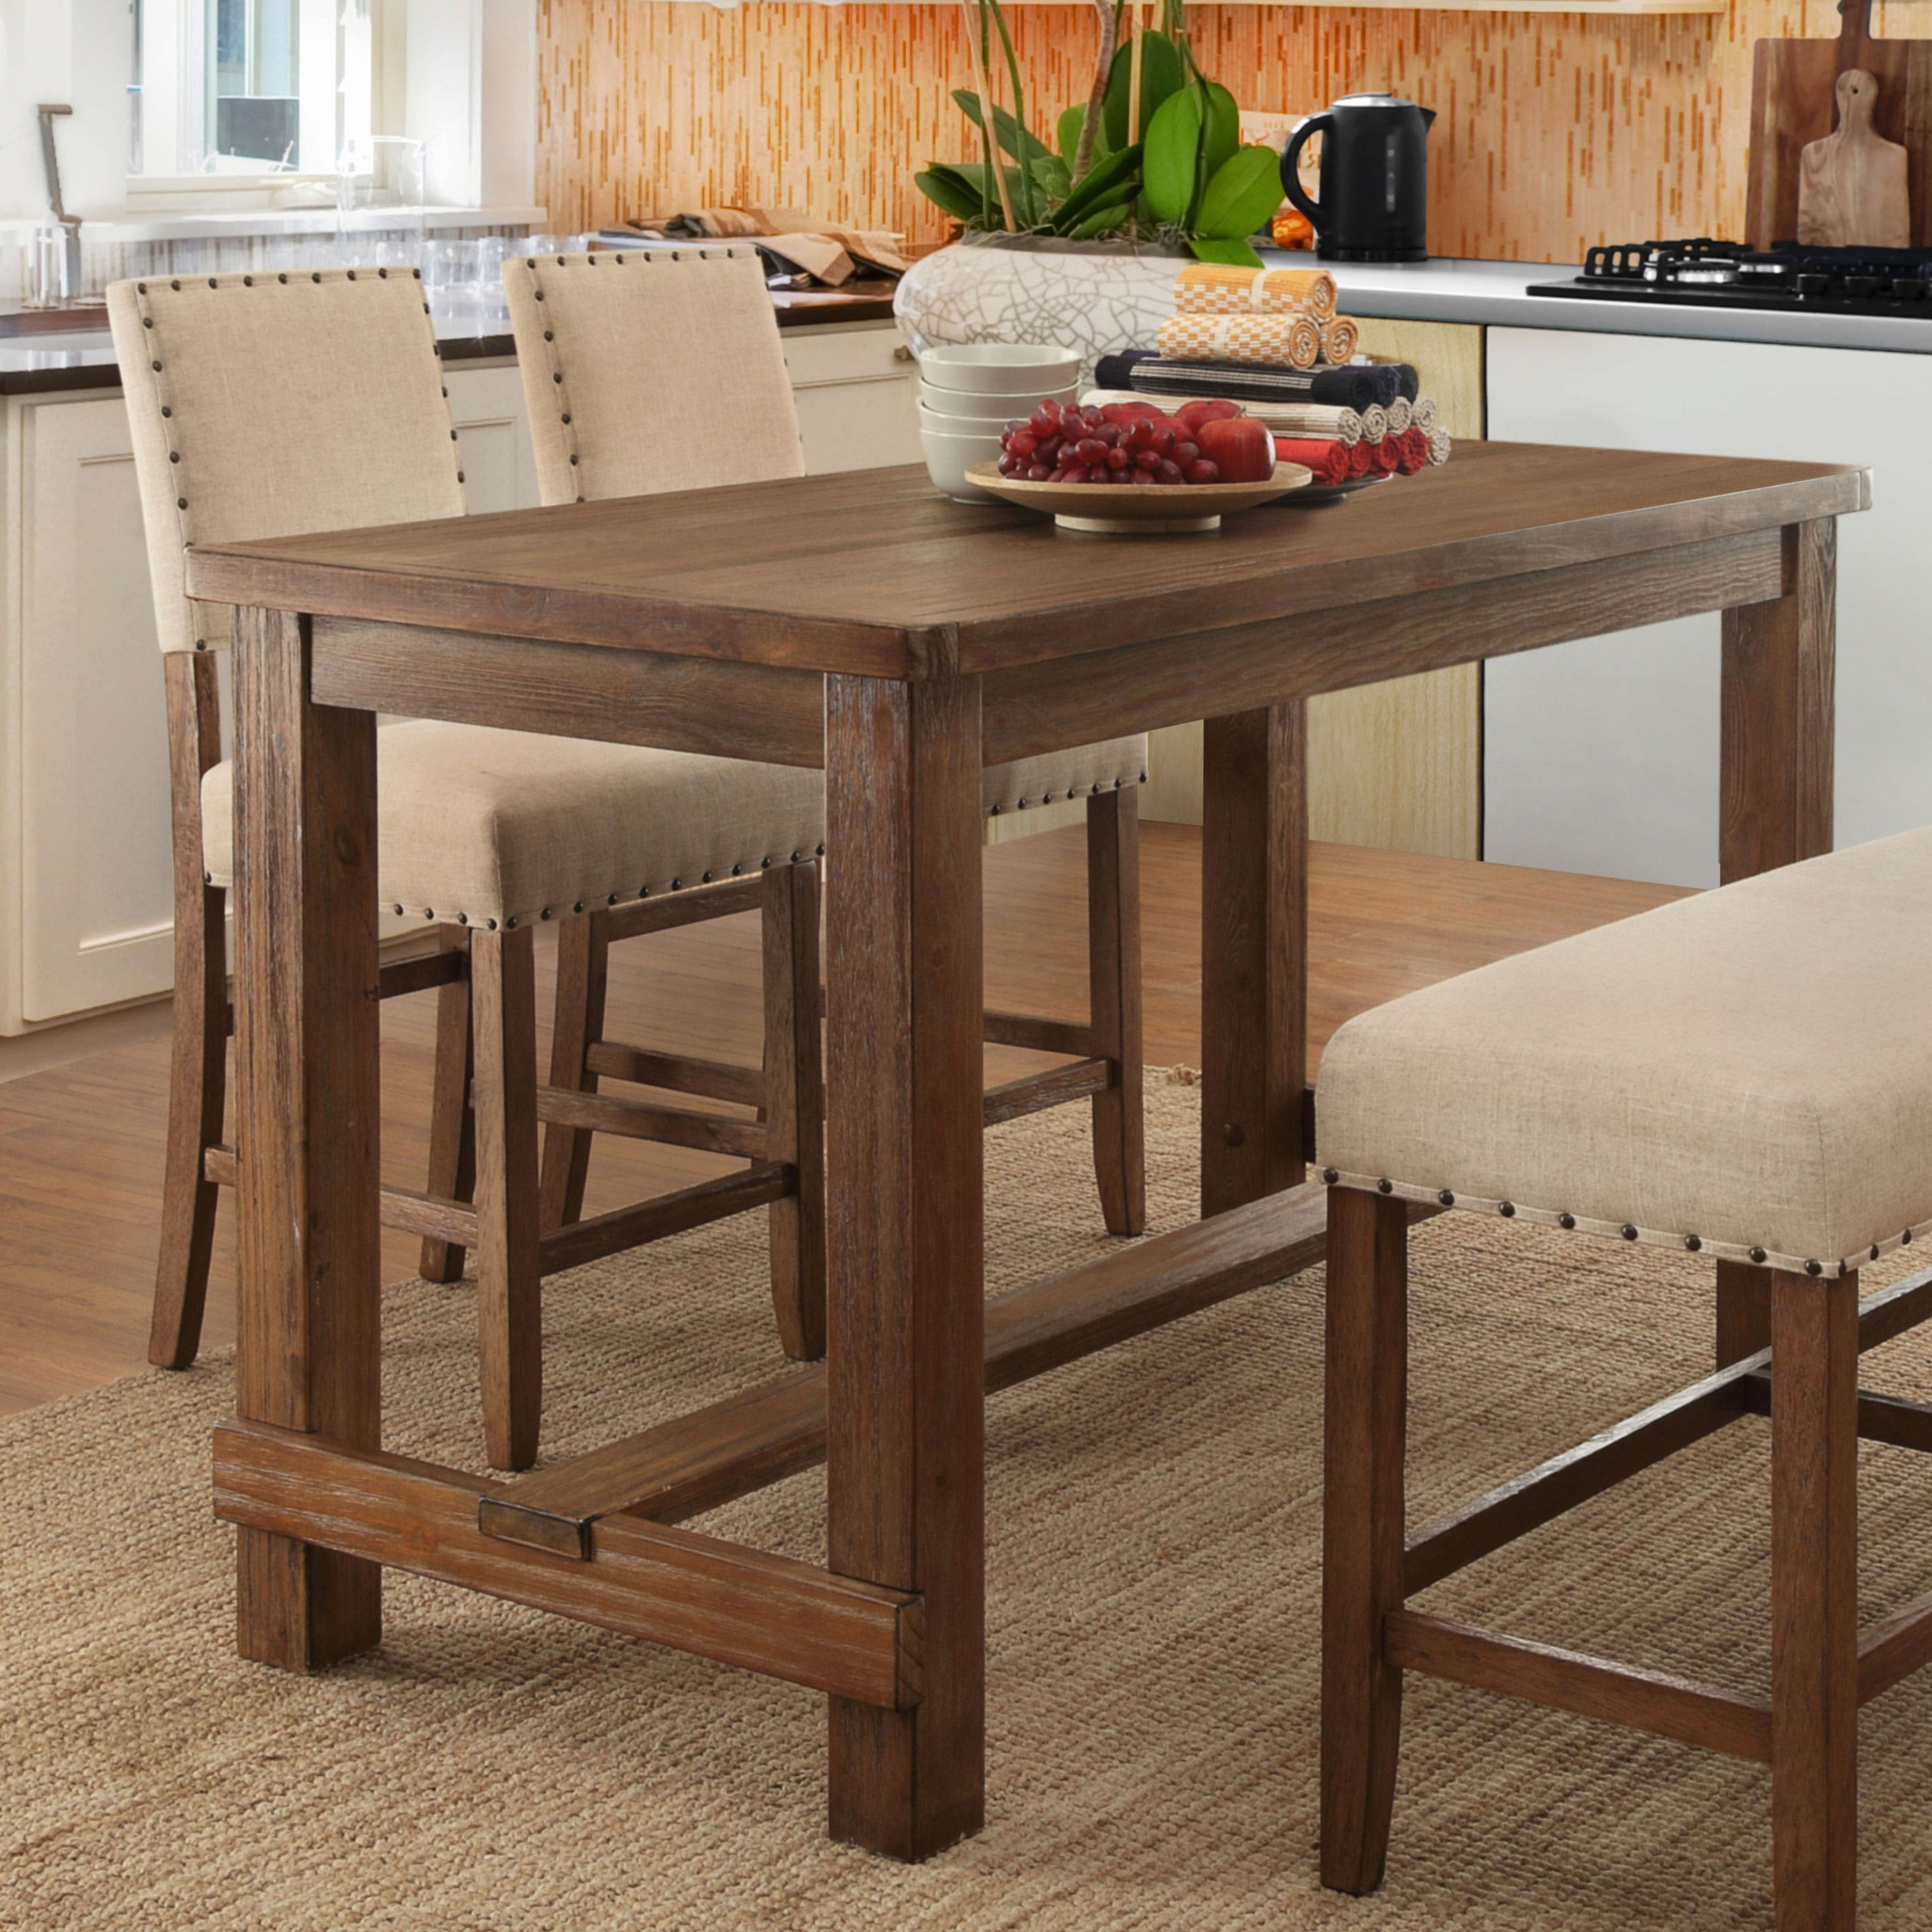 Preferred Buy Furniture Of America Kitchen & Dining Room Tables Online At Regarding Biggs 5 Piece Counter Height Solid Wood Dining Sets (Set Of 5) (View 10 of 25)